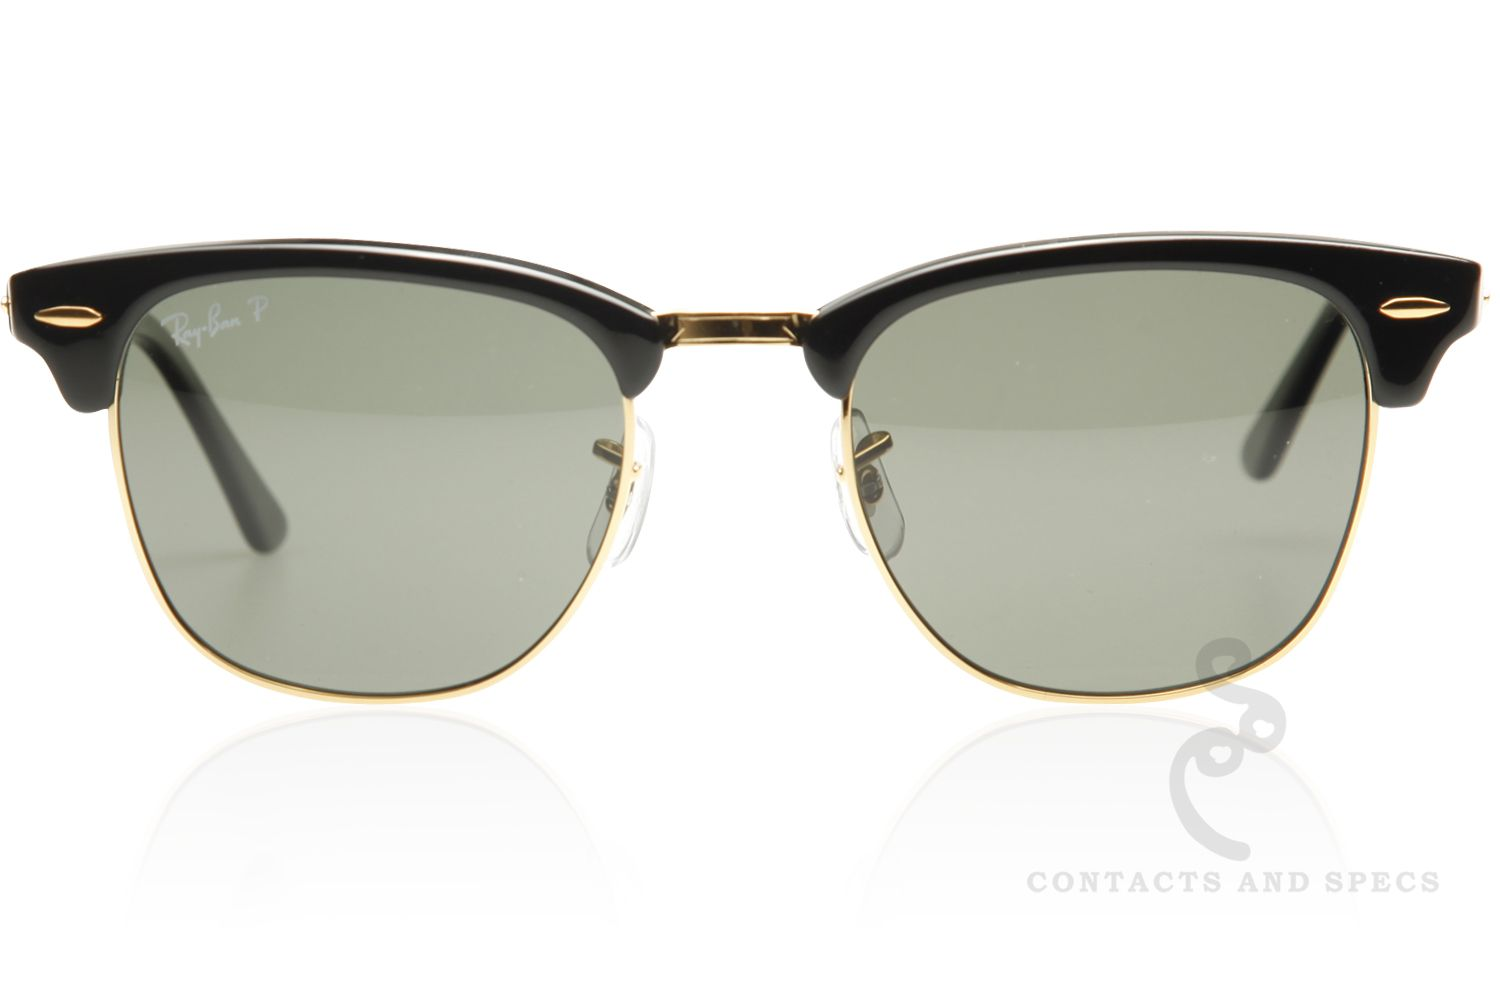 Ray Ban Clubmasters | Sunglasses | Pinterest